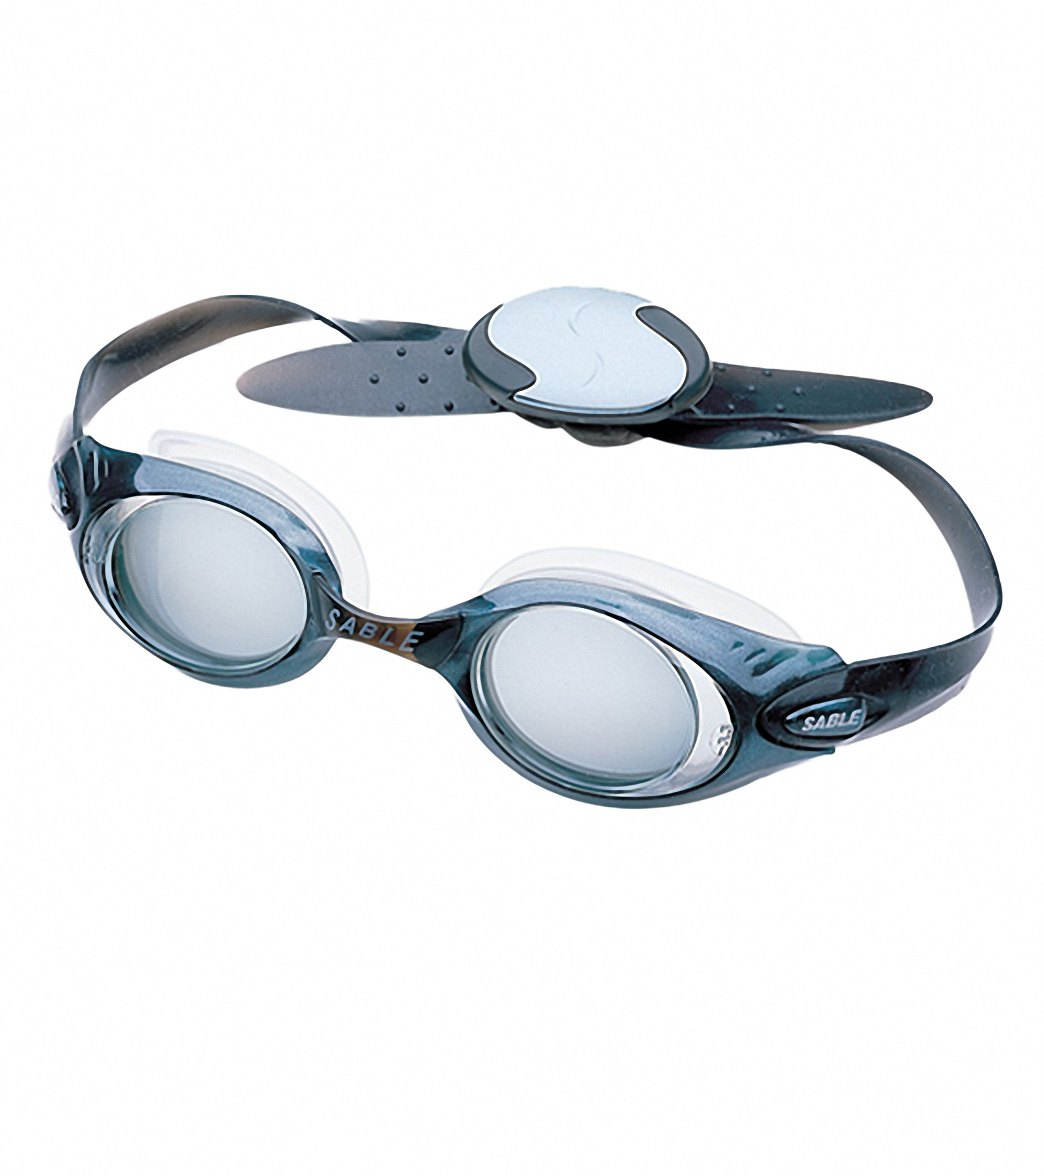 735cd1ffe9b Sable Water Optics Tinted Recreational Goggle at SwimOutlet.com - Free  Shipping